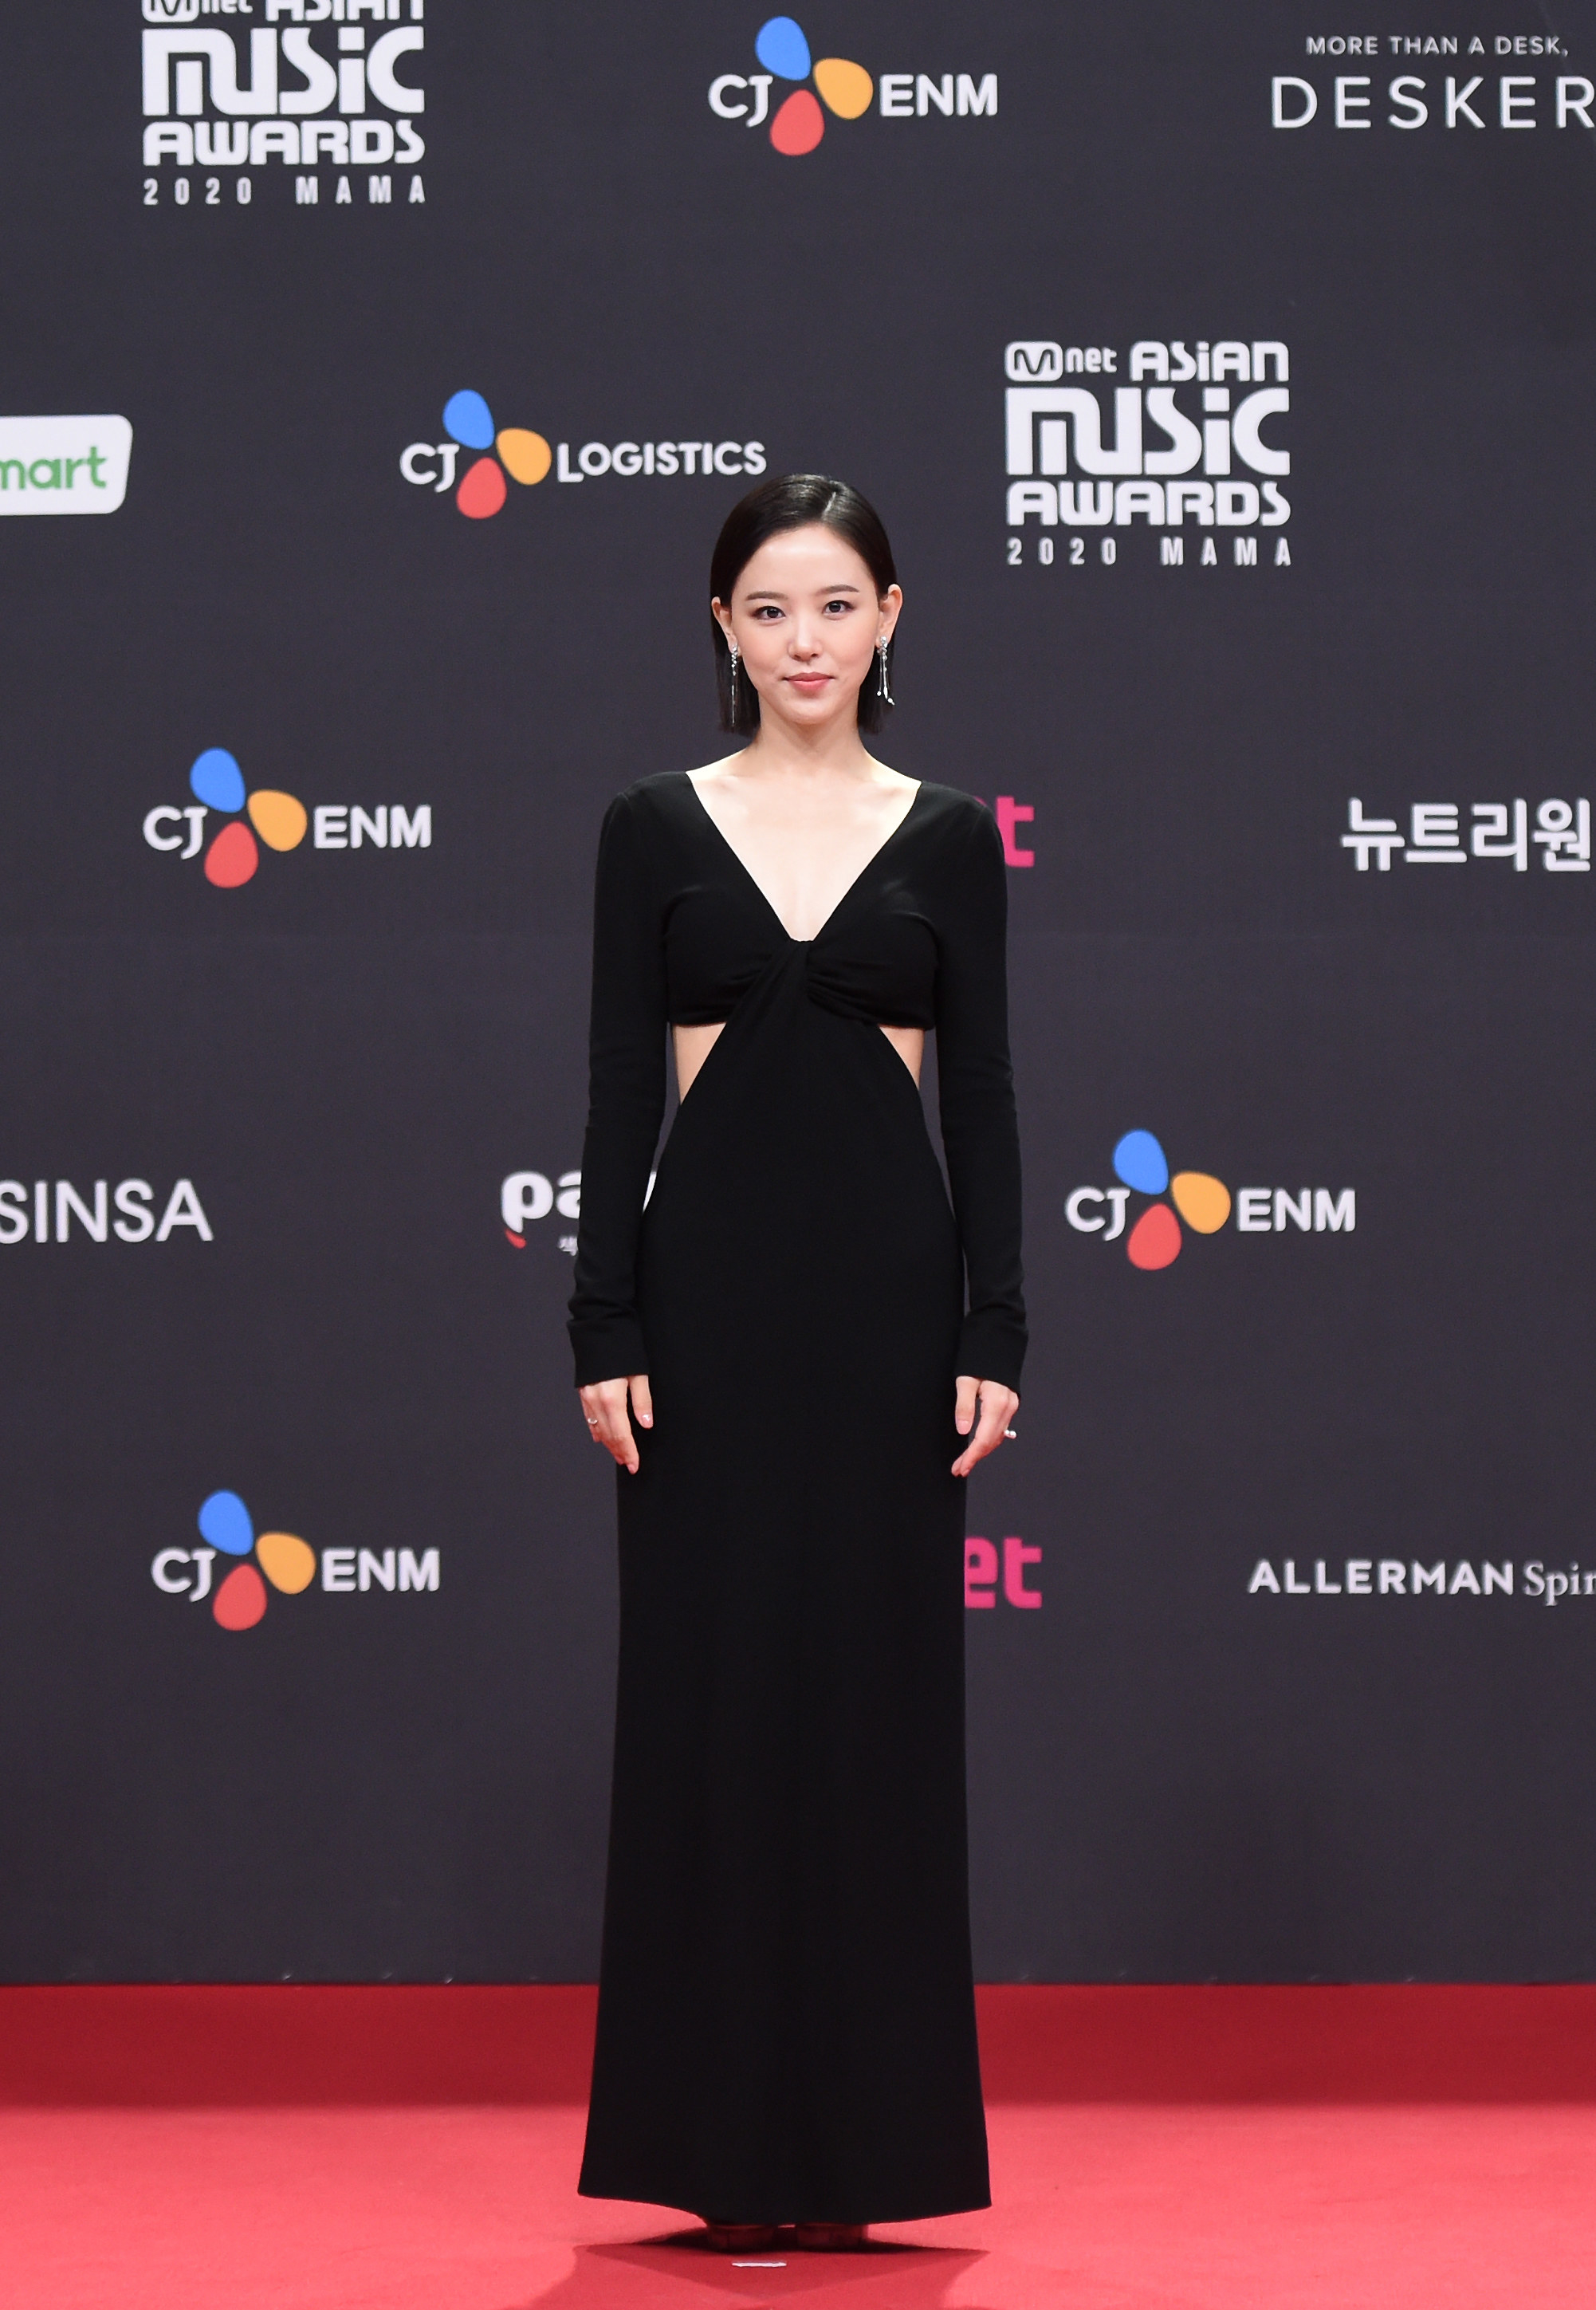 Kang Han Na wears a black floor-length gown with cut outs on the sides at the 2020 Mnet Asian Music Awards